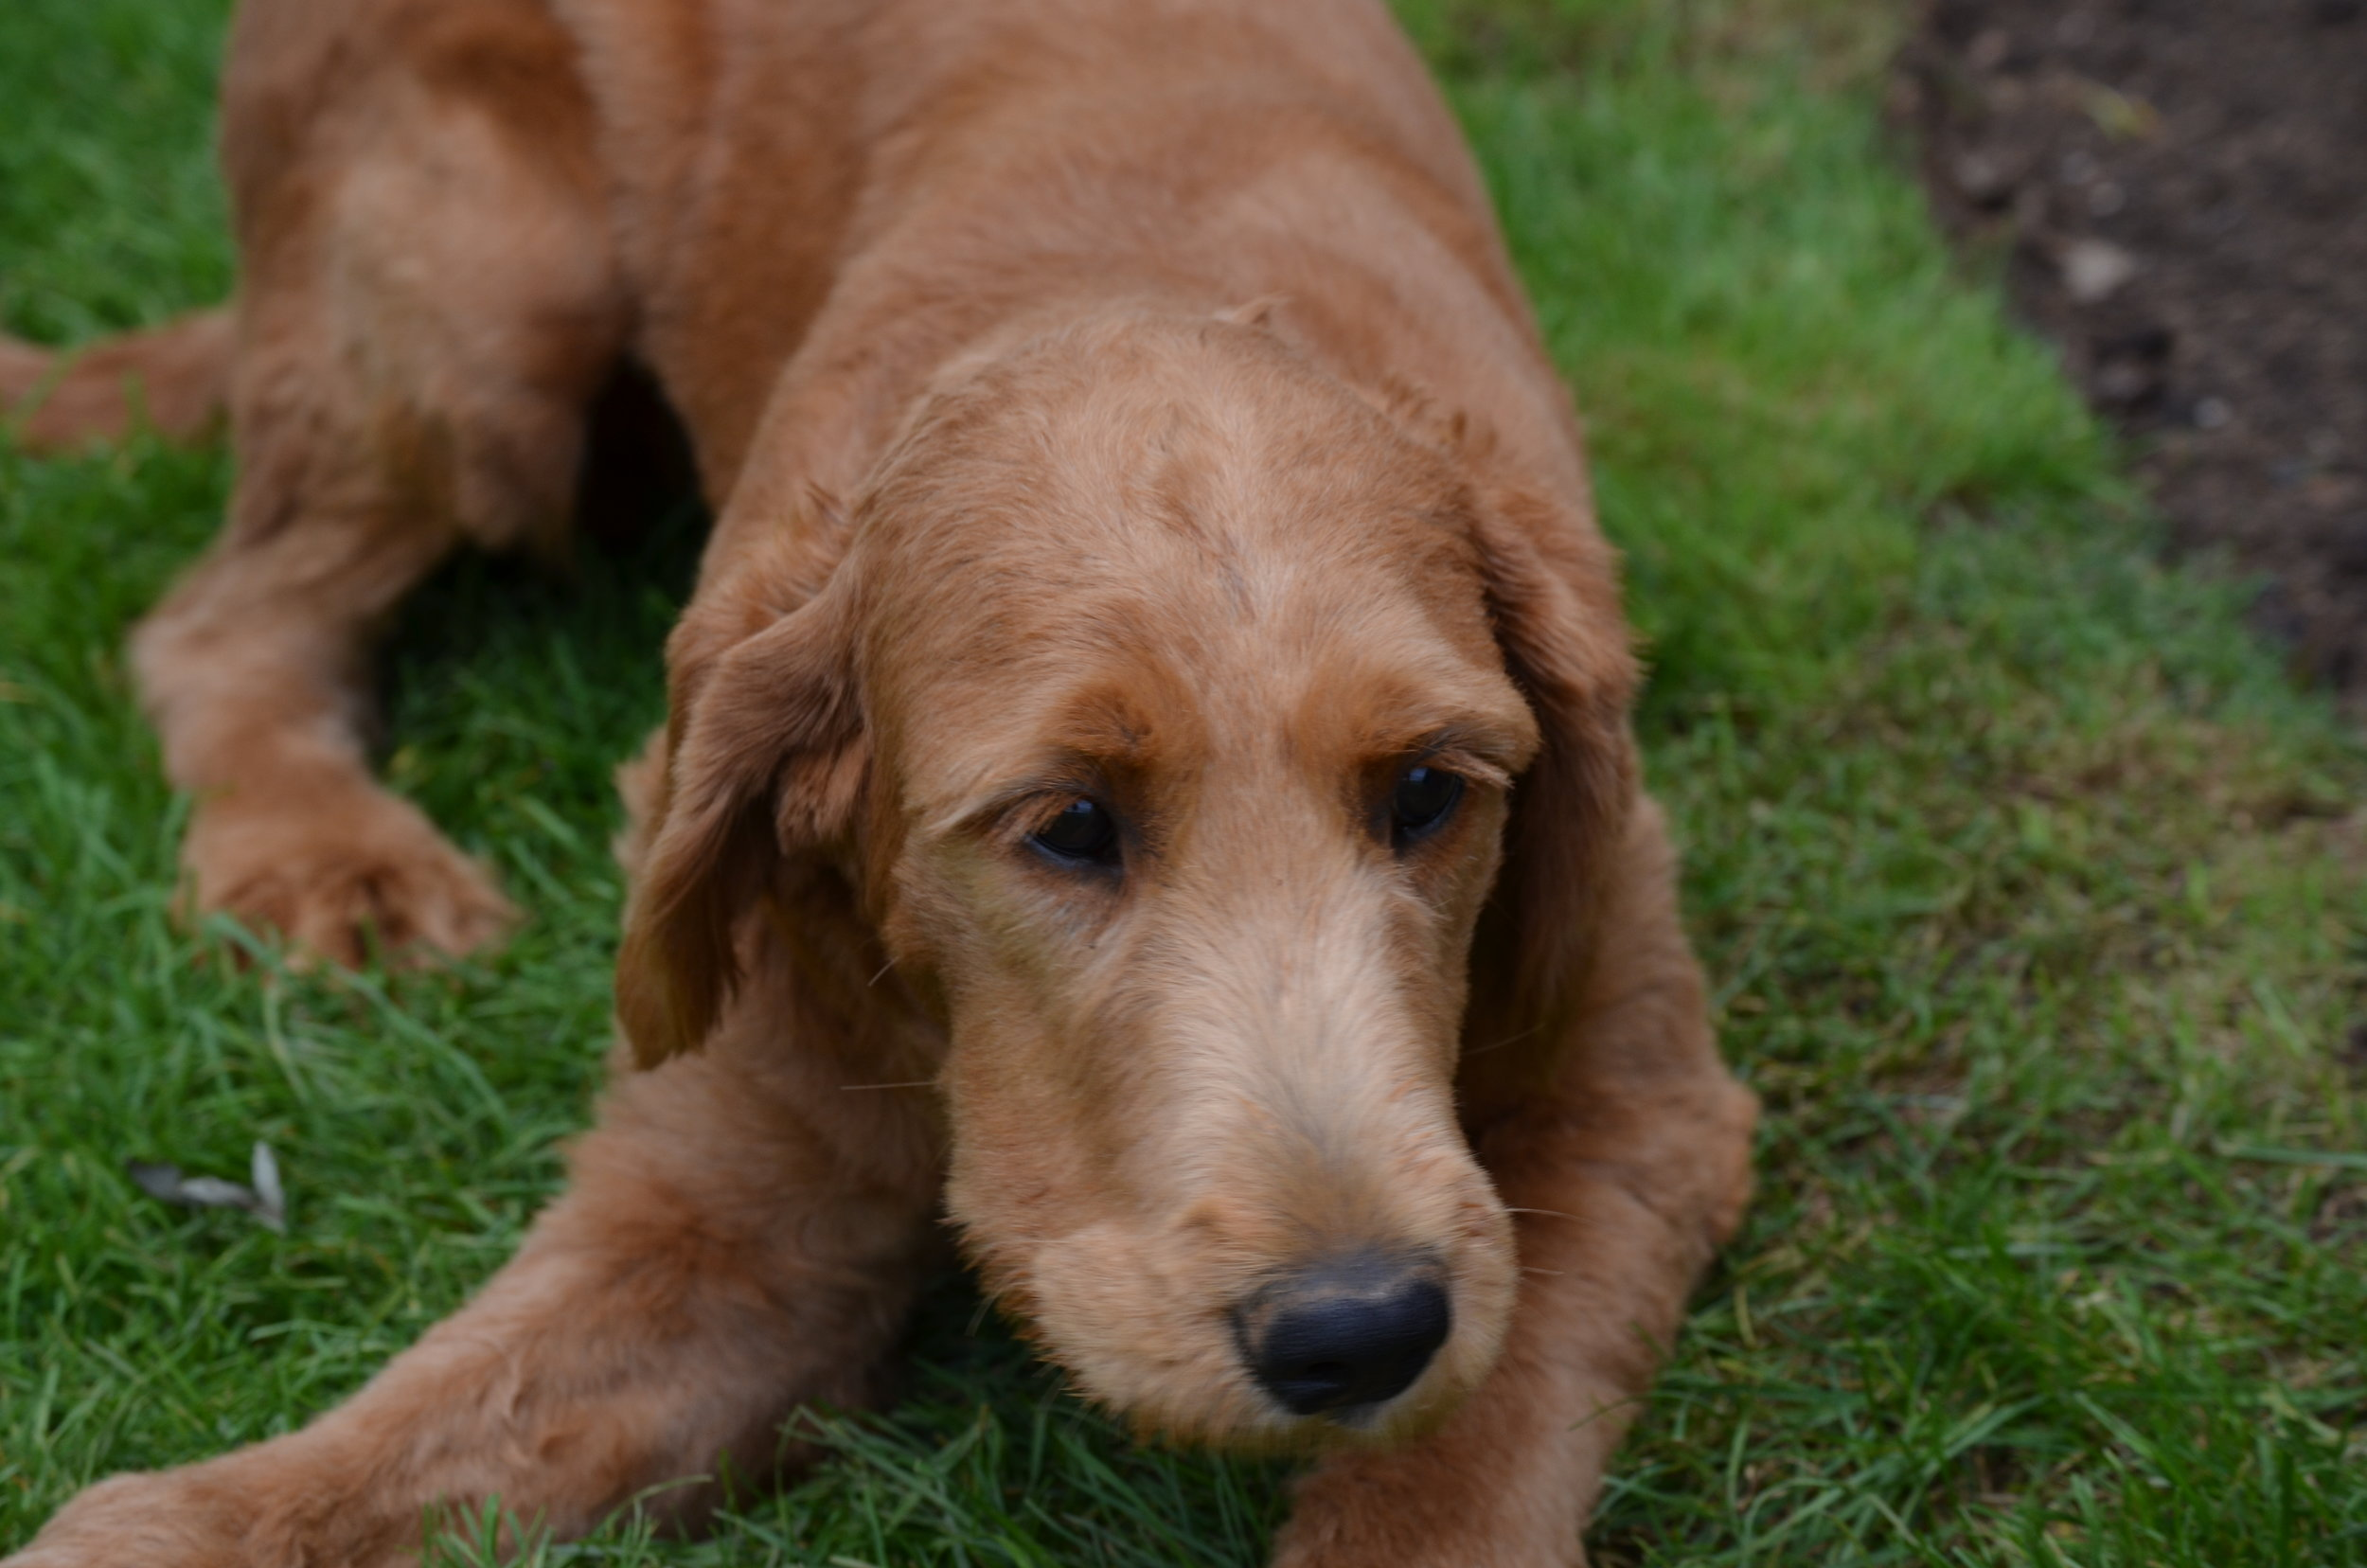 Mandy, the Goldendoodle mom